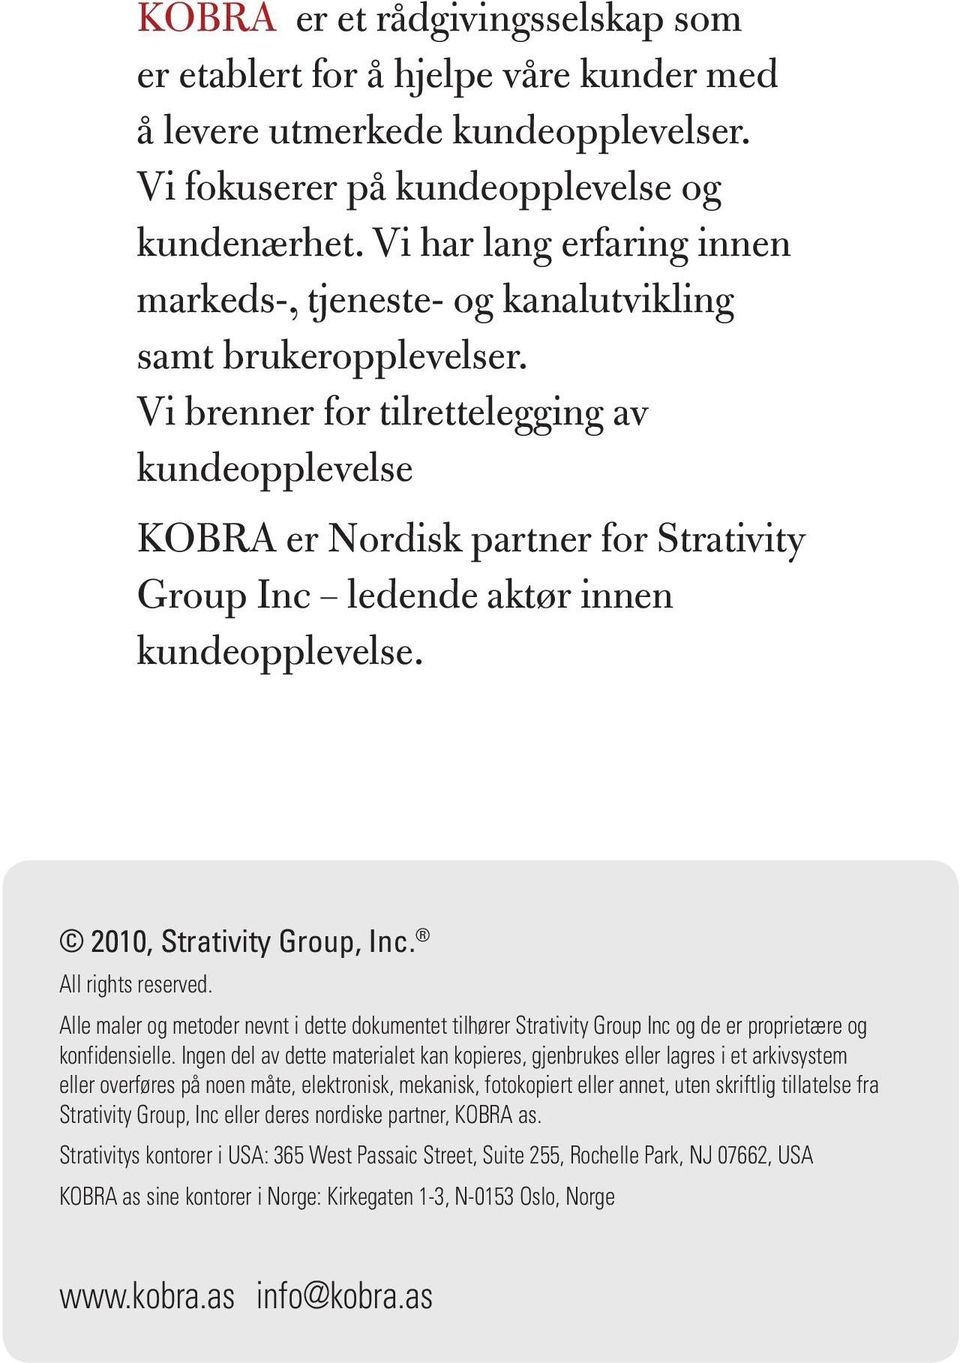 Vi brenner for tilrettelegging av kundeopplevelse KOBRA er Nordisk partner for Strativity Group Inc ledende aktør innen kundeopplevelse. 2010, Strativity Group, Inc. All rights reserved.